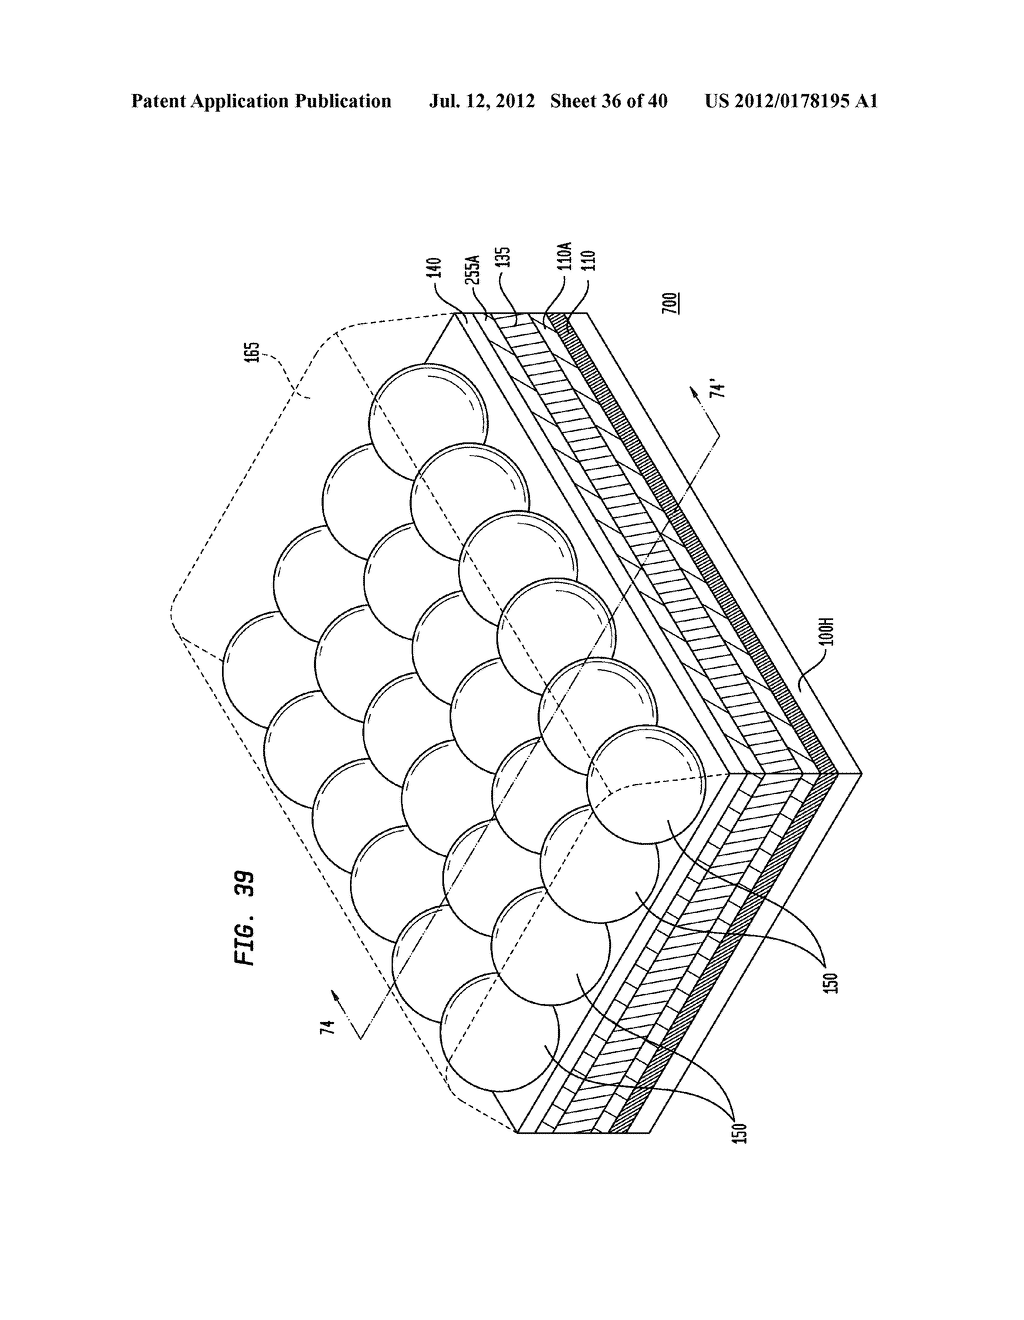 Method of Manufacturing a Light Emitting, Photovoltaic or Other Electronic     Apparatus and System - diagram, schematic, and image 37